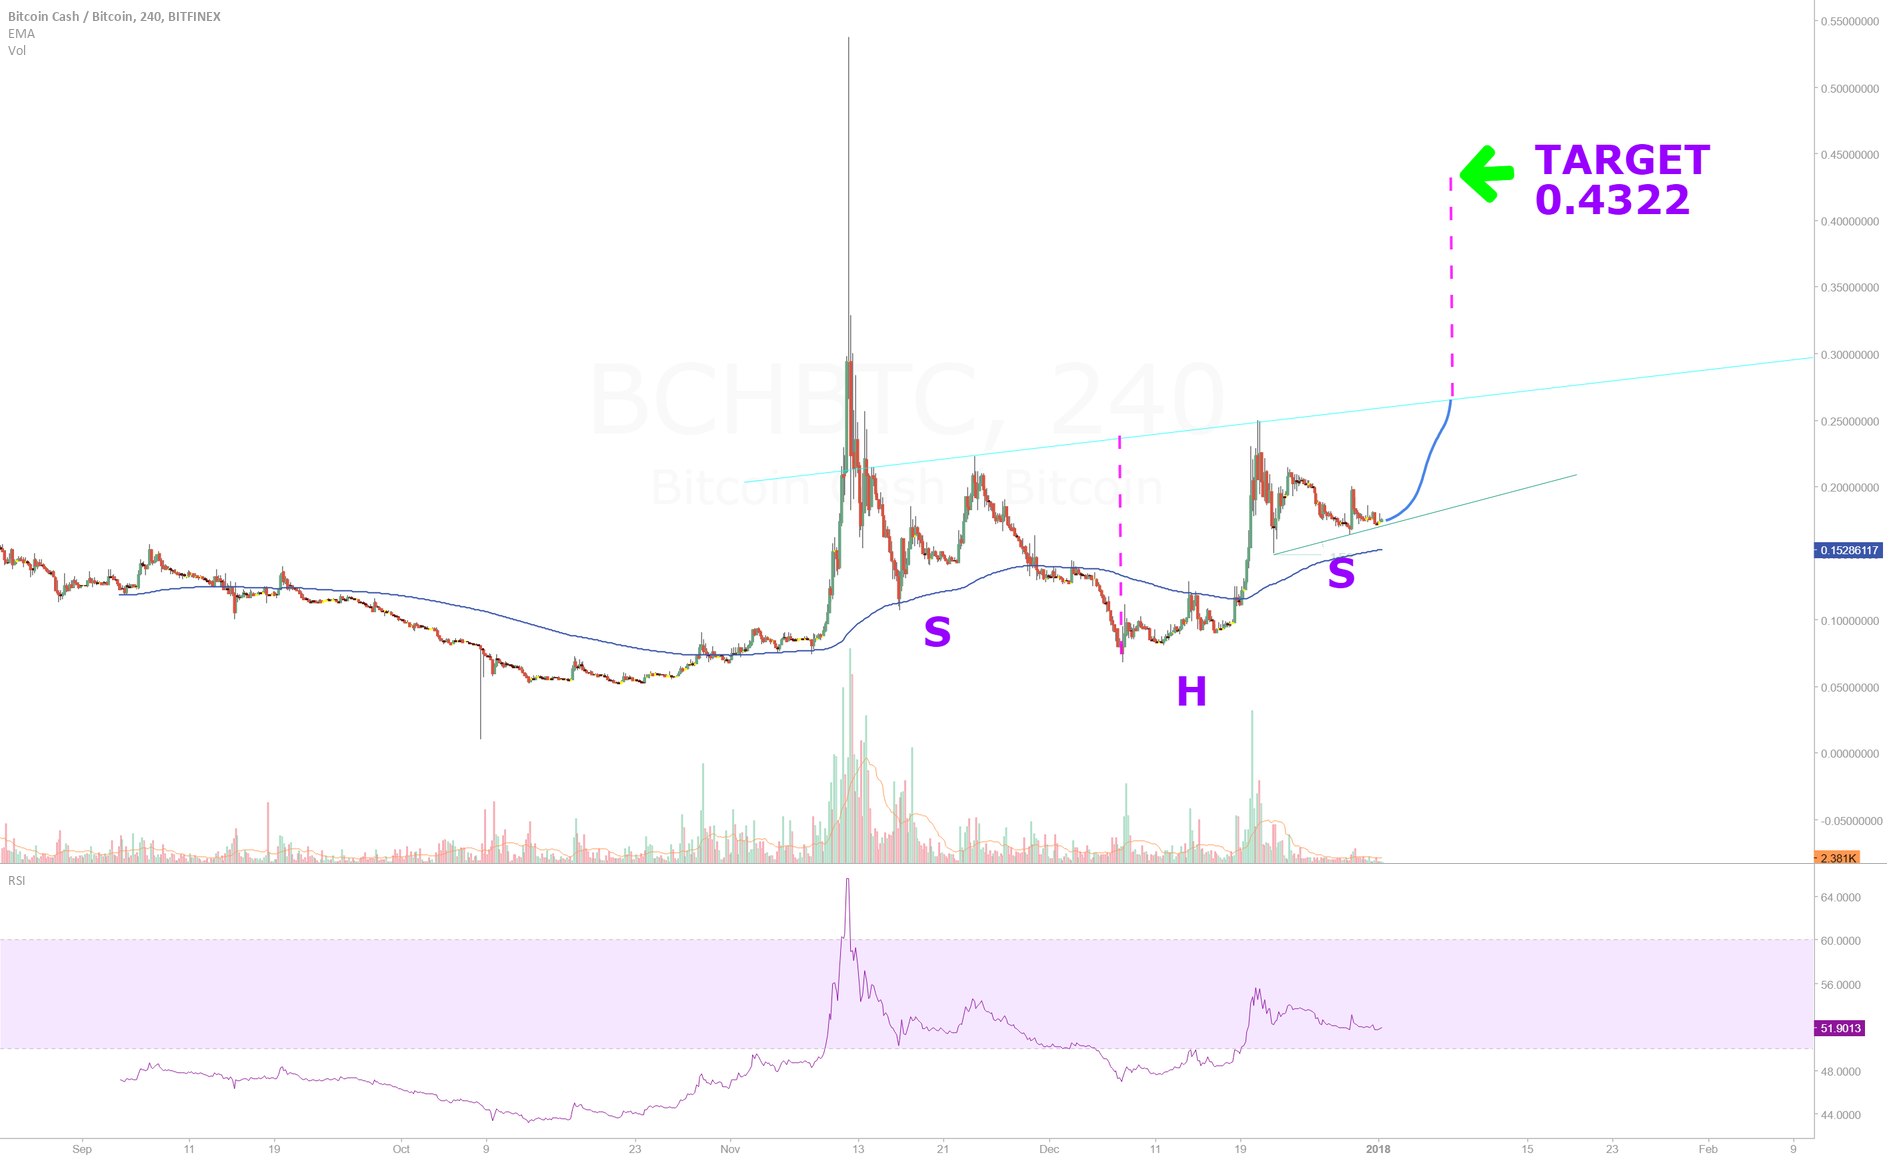 BCH about to moon (READ DESCRIPTION)